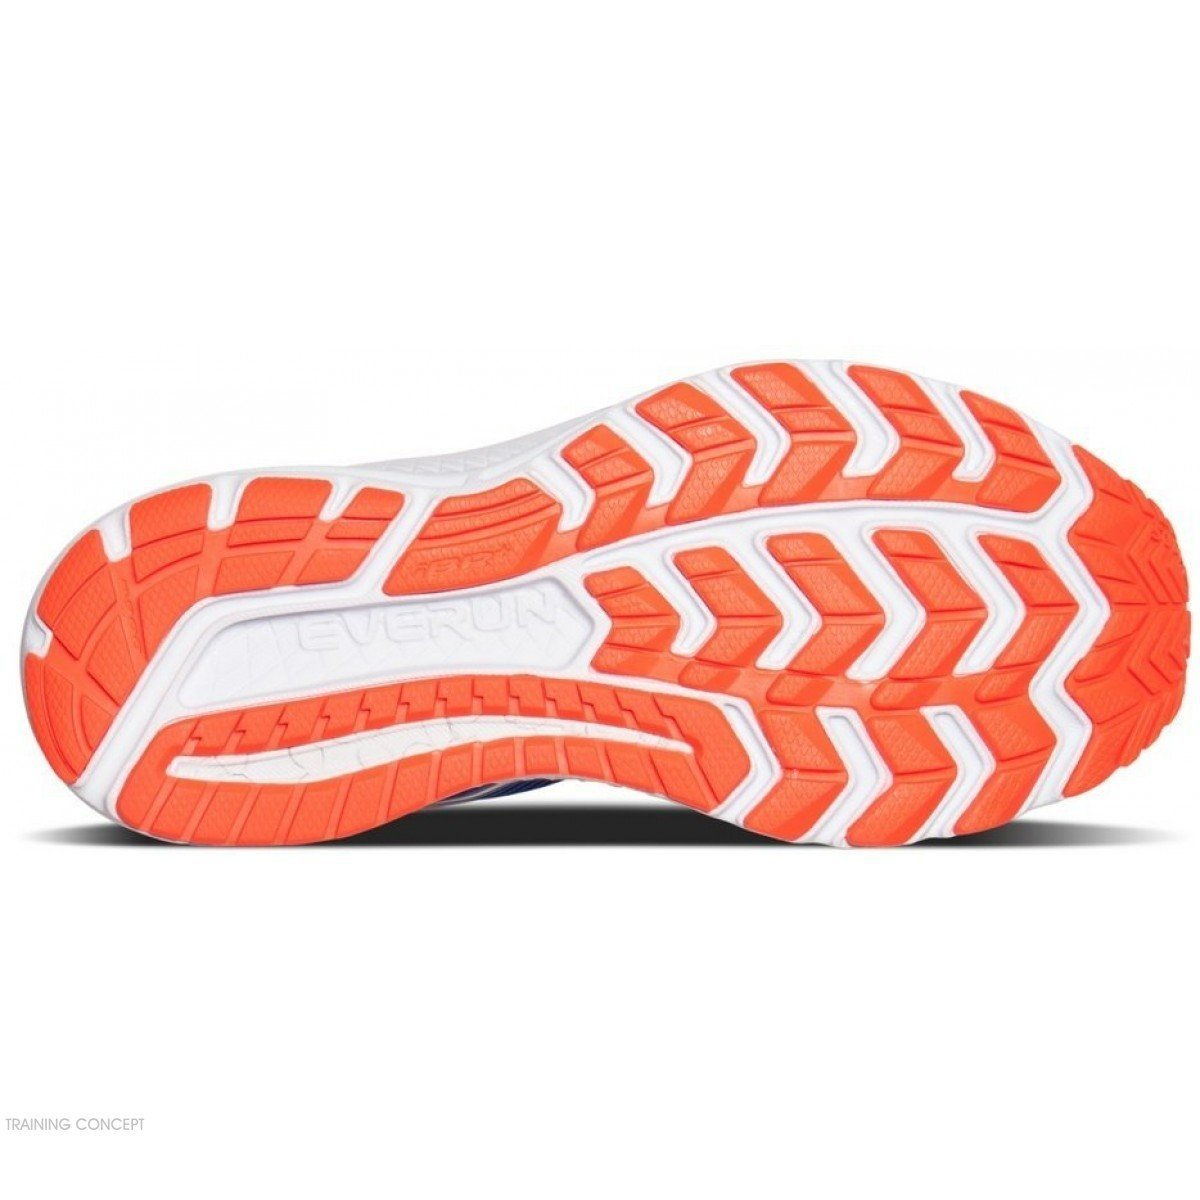 Course Running In Chaussures Saucony Pied Vna6yh8x De Trail nUqxSZx8wF